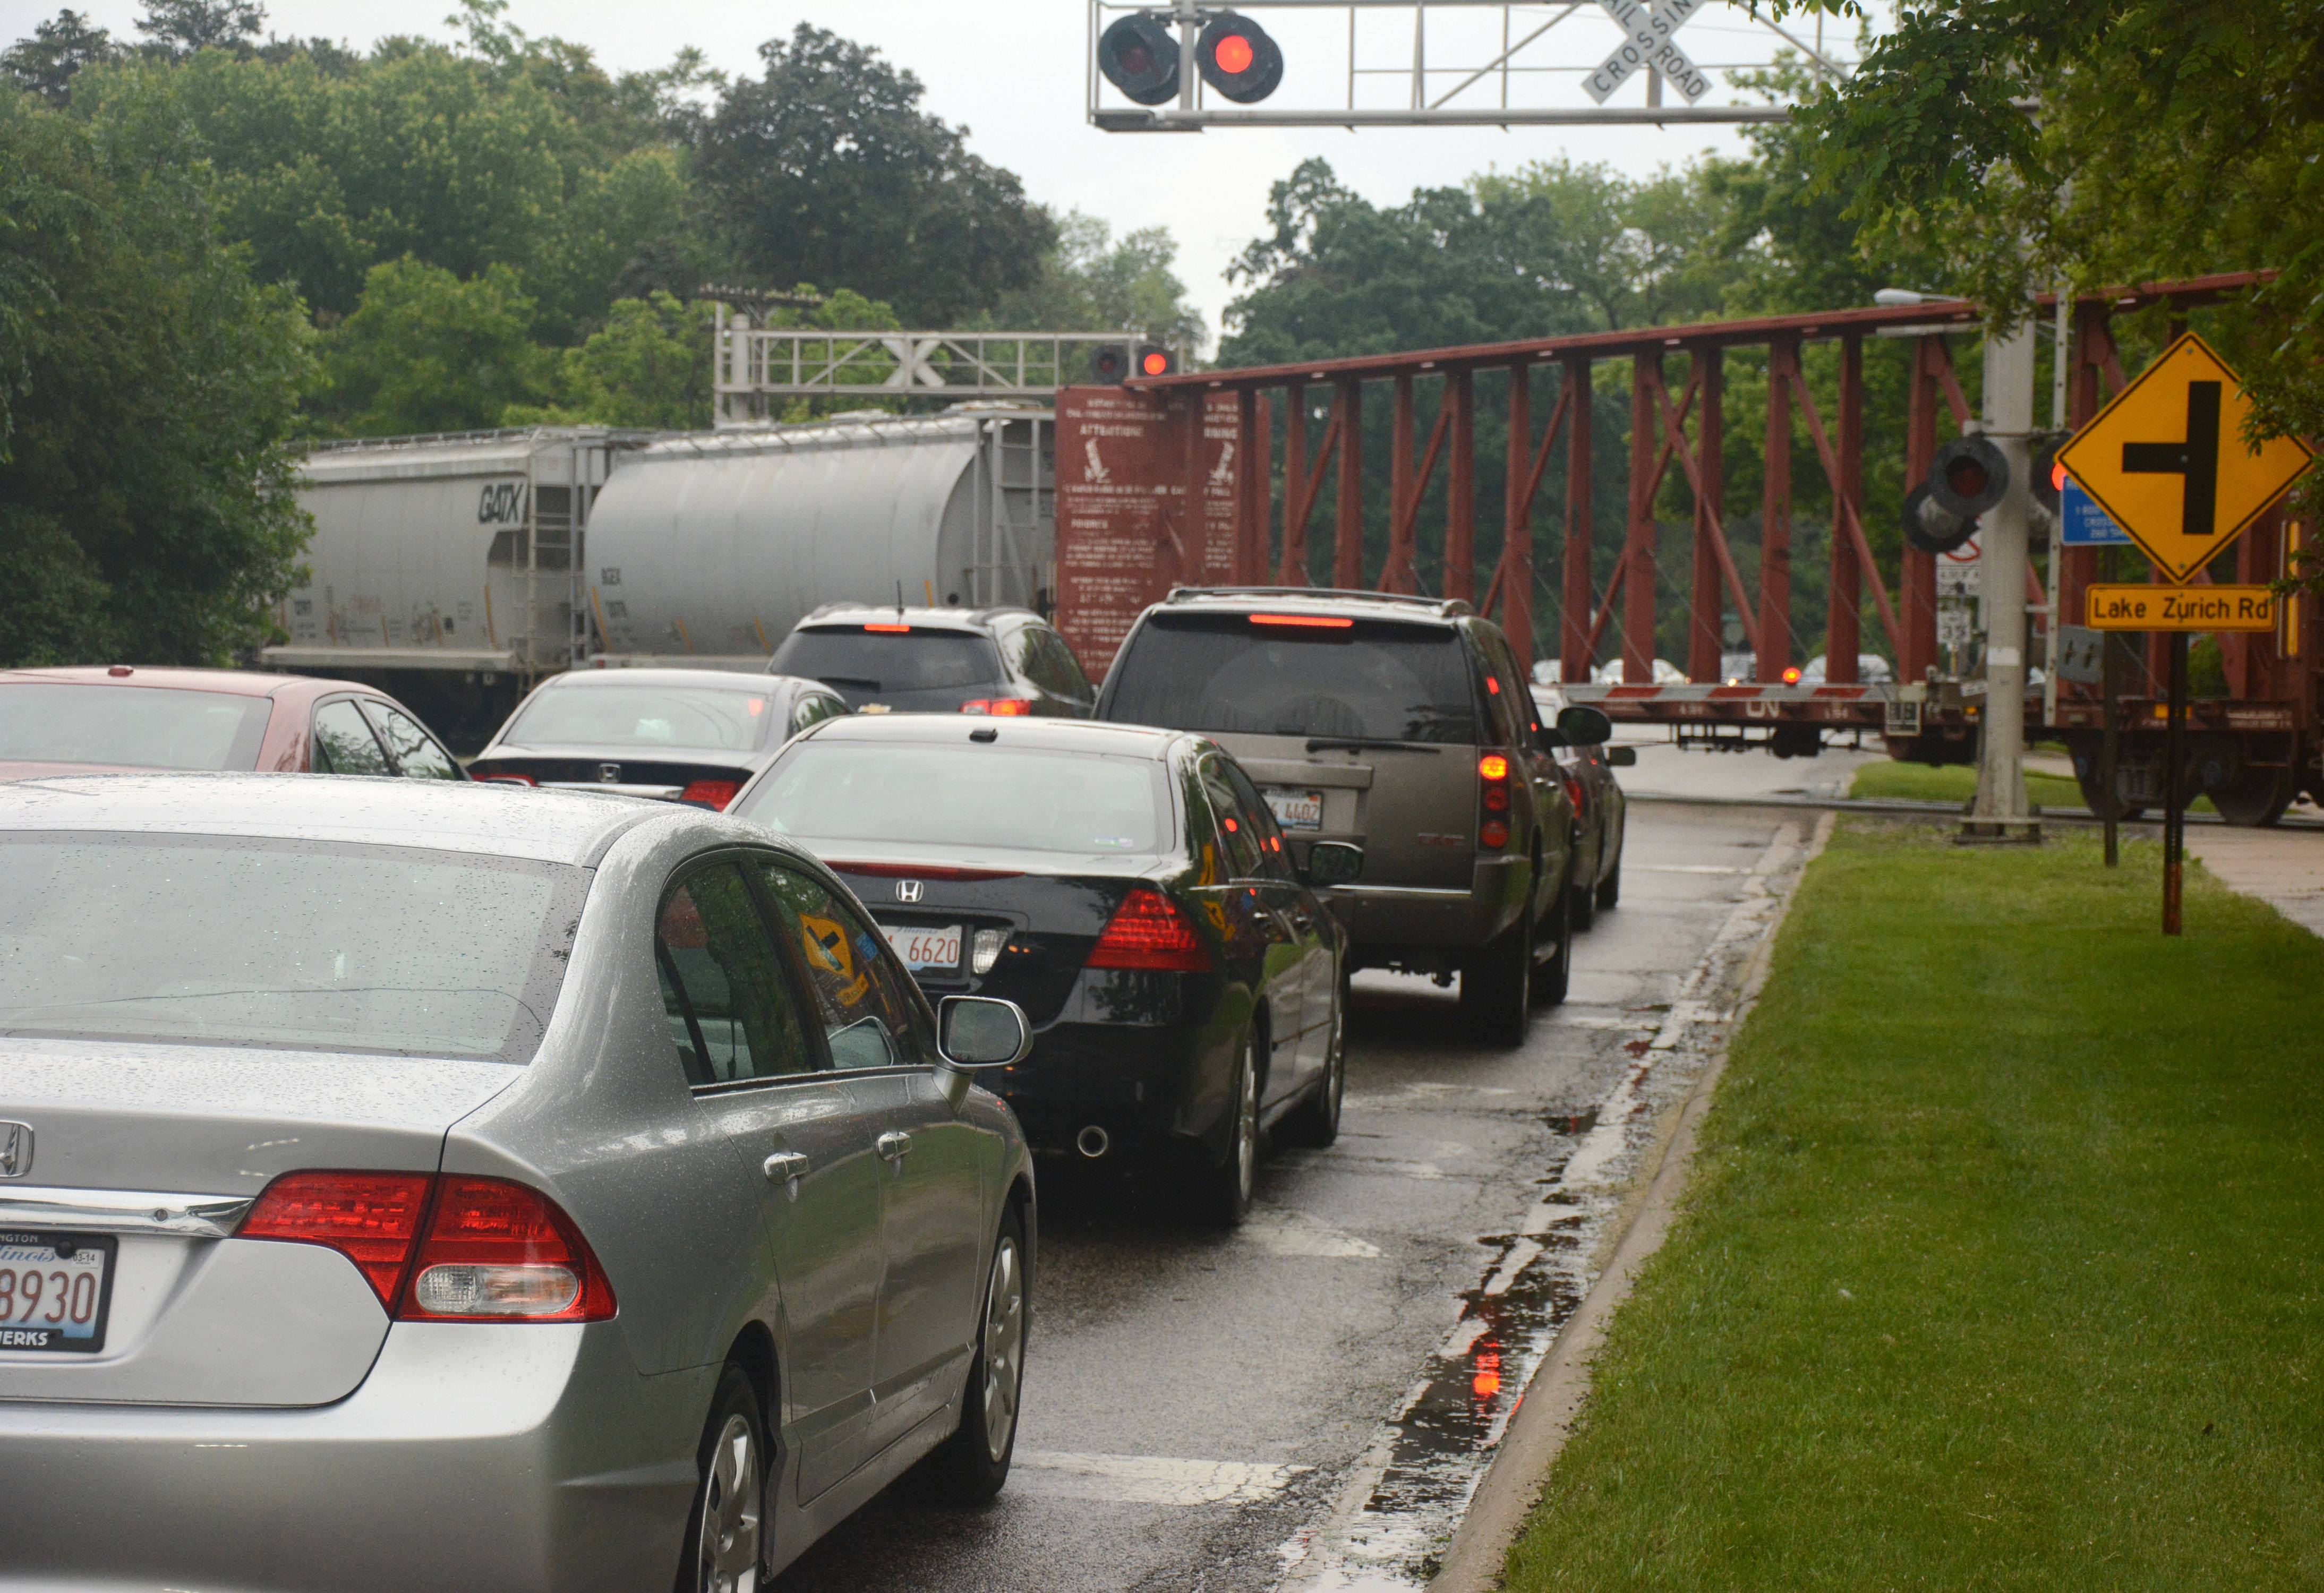 Lengthy delays for trains at crossings like Route 14 in Barrington have prompted concerns from Sen. Dick Durbin.